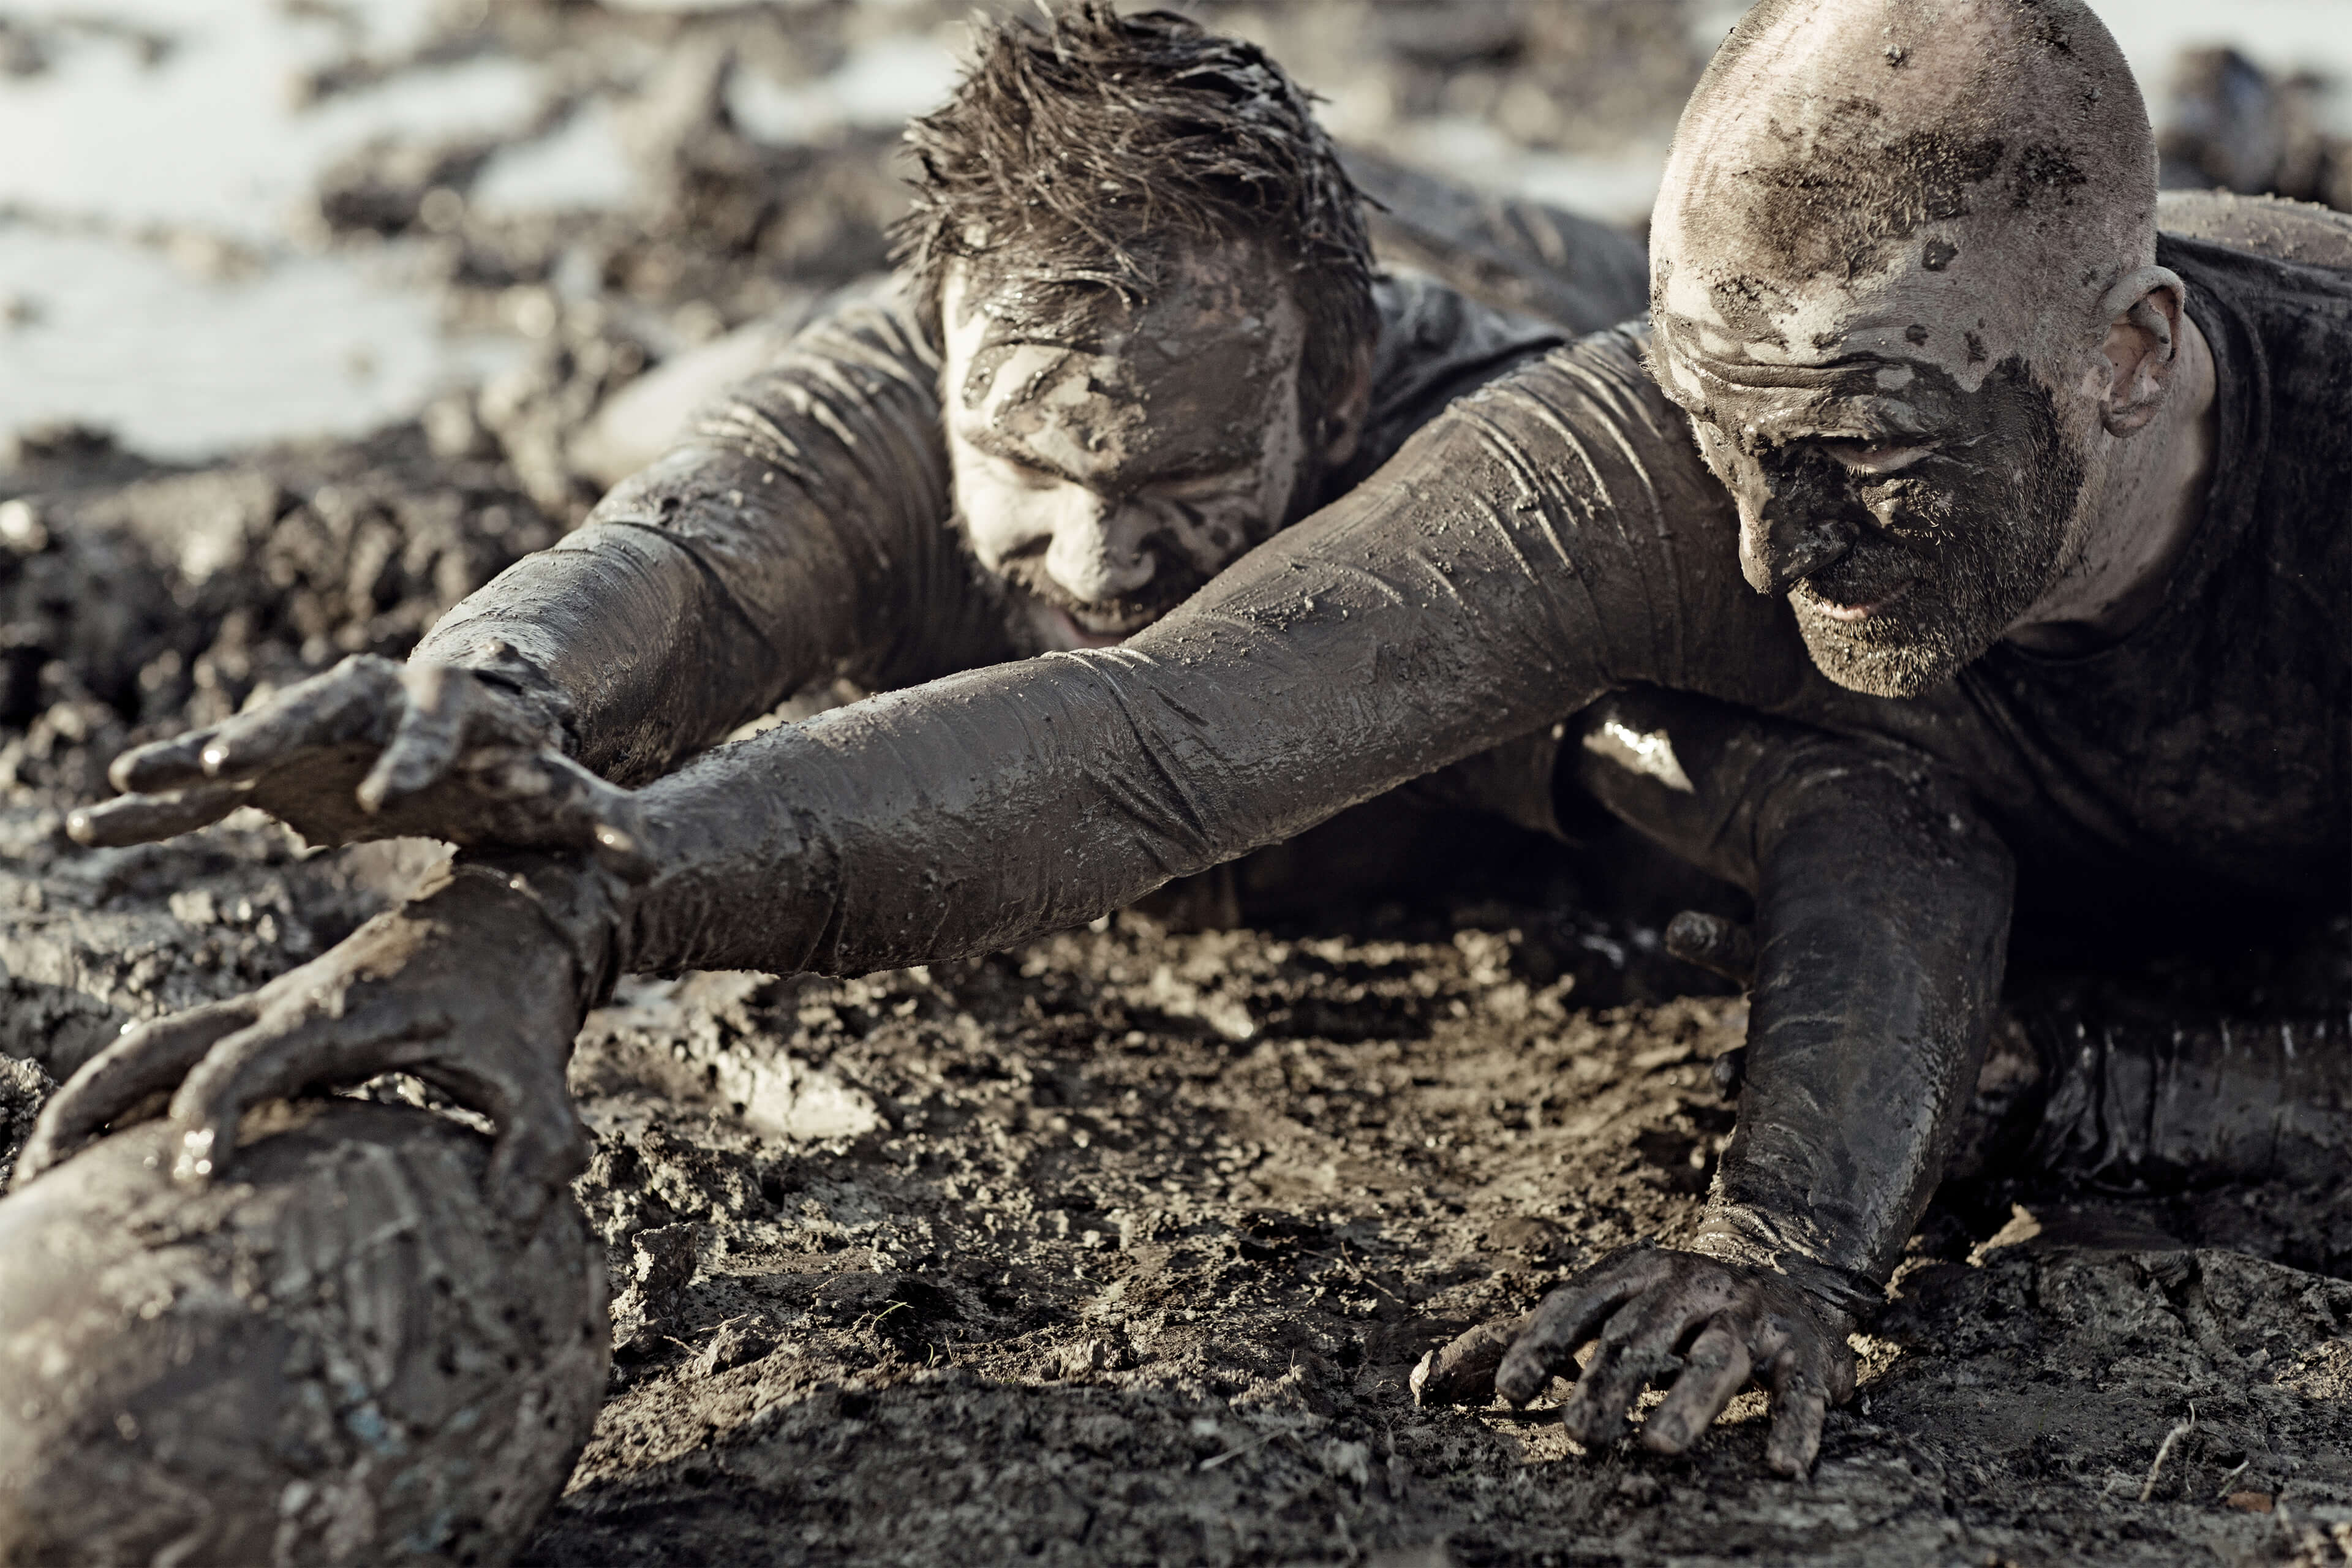 People crawling in the mud and trying to move quickly